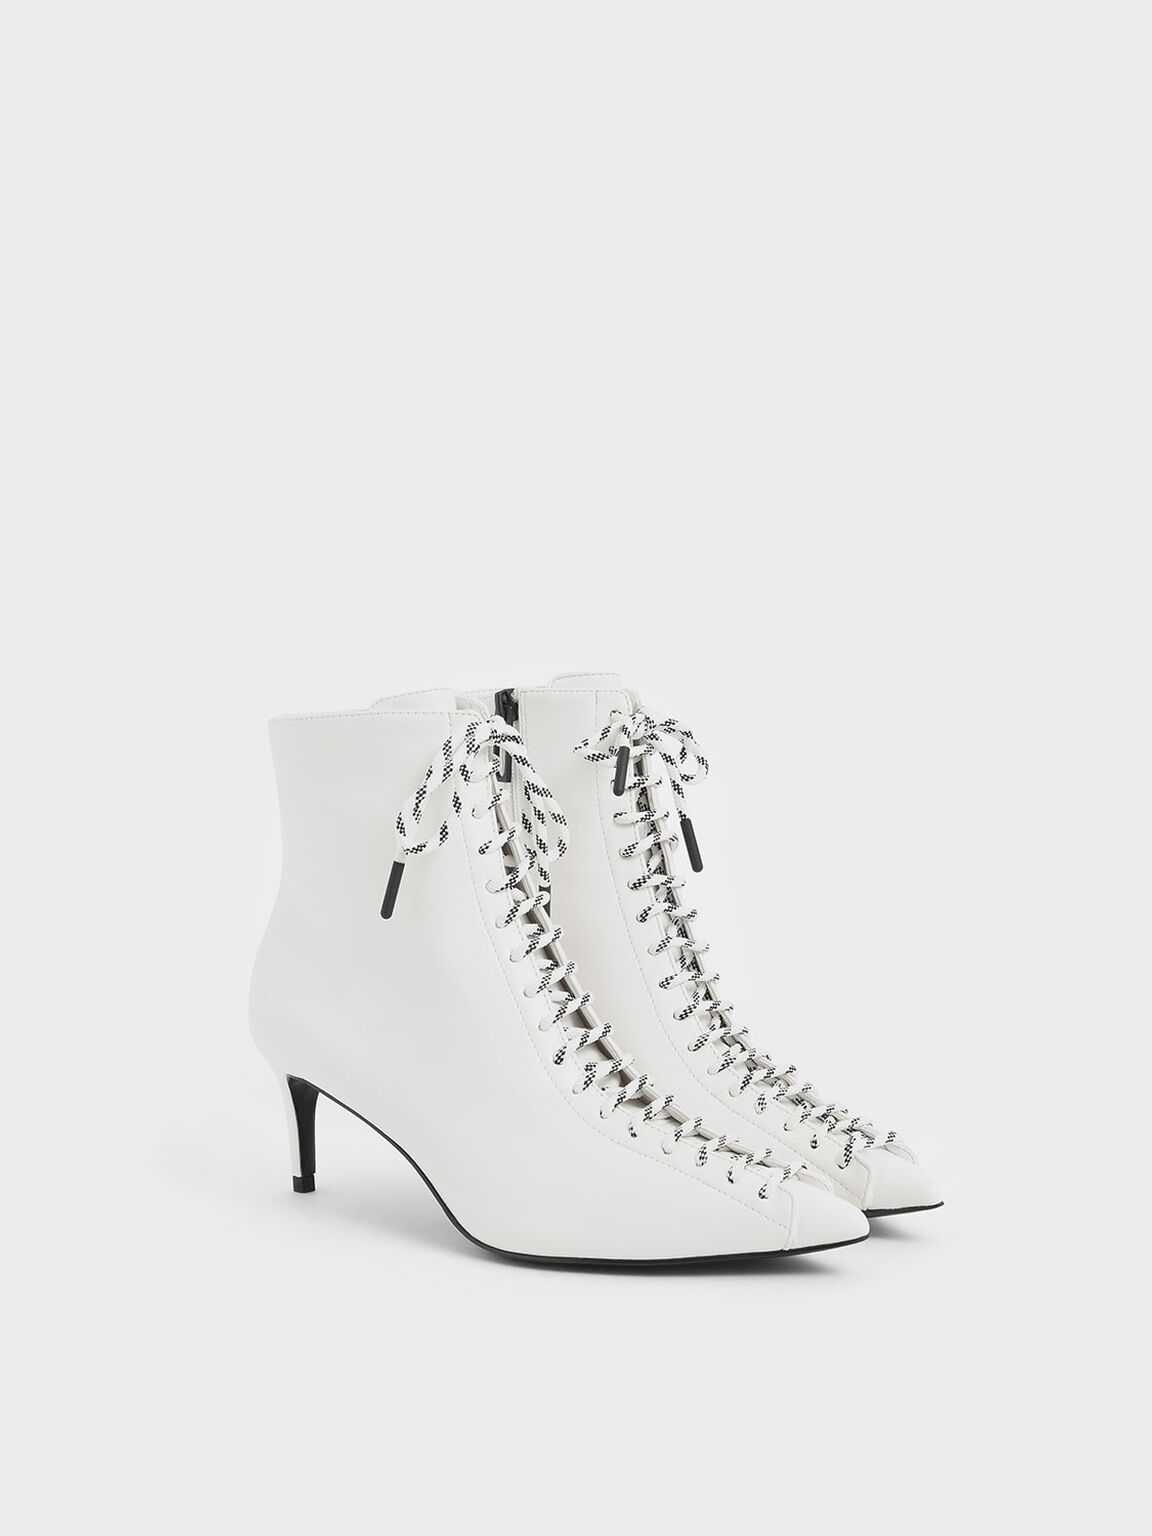 Nylon Lace-Up Ankle Boots, White, hi-res